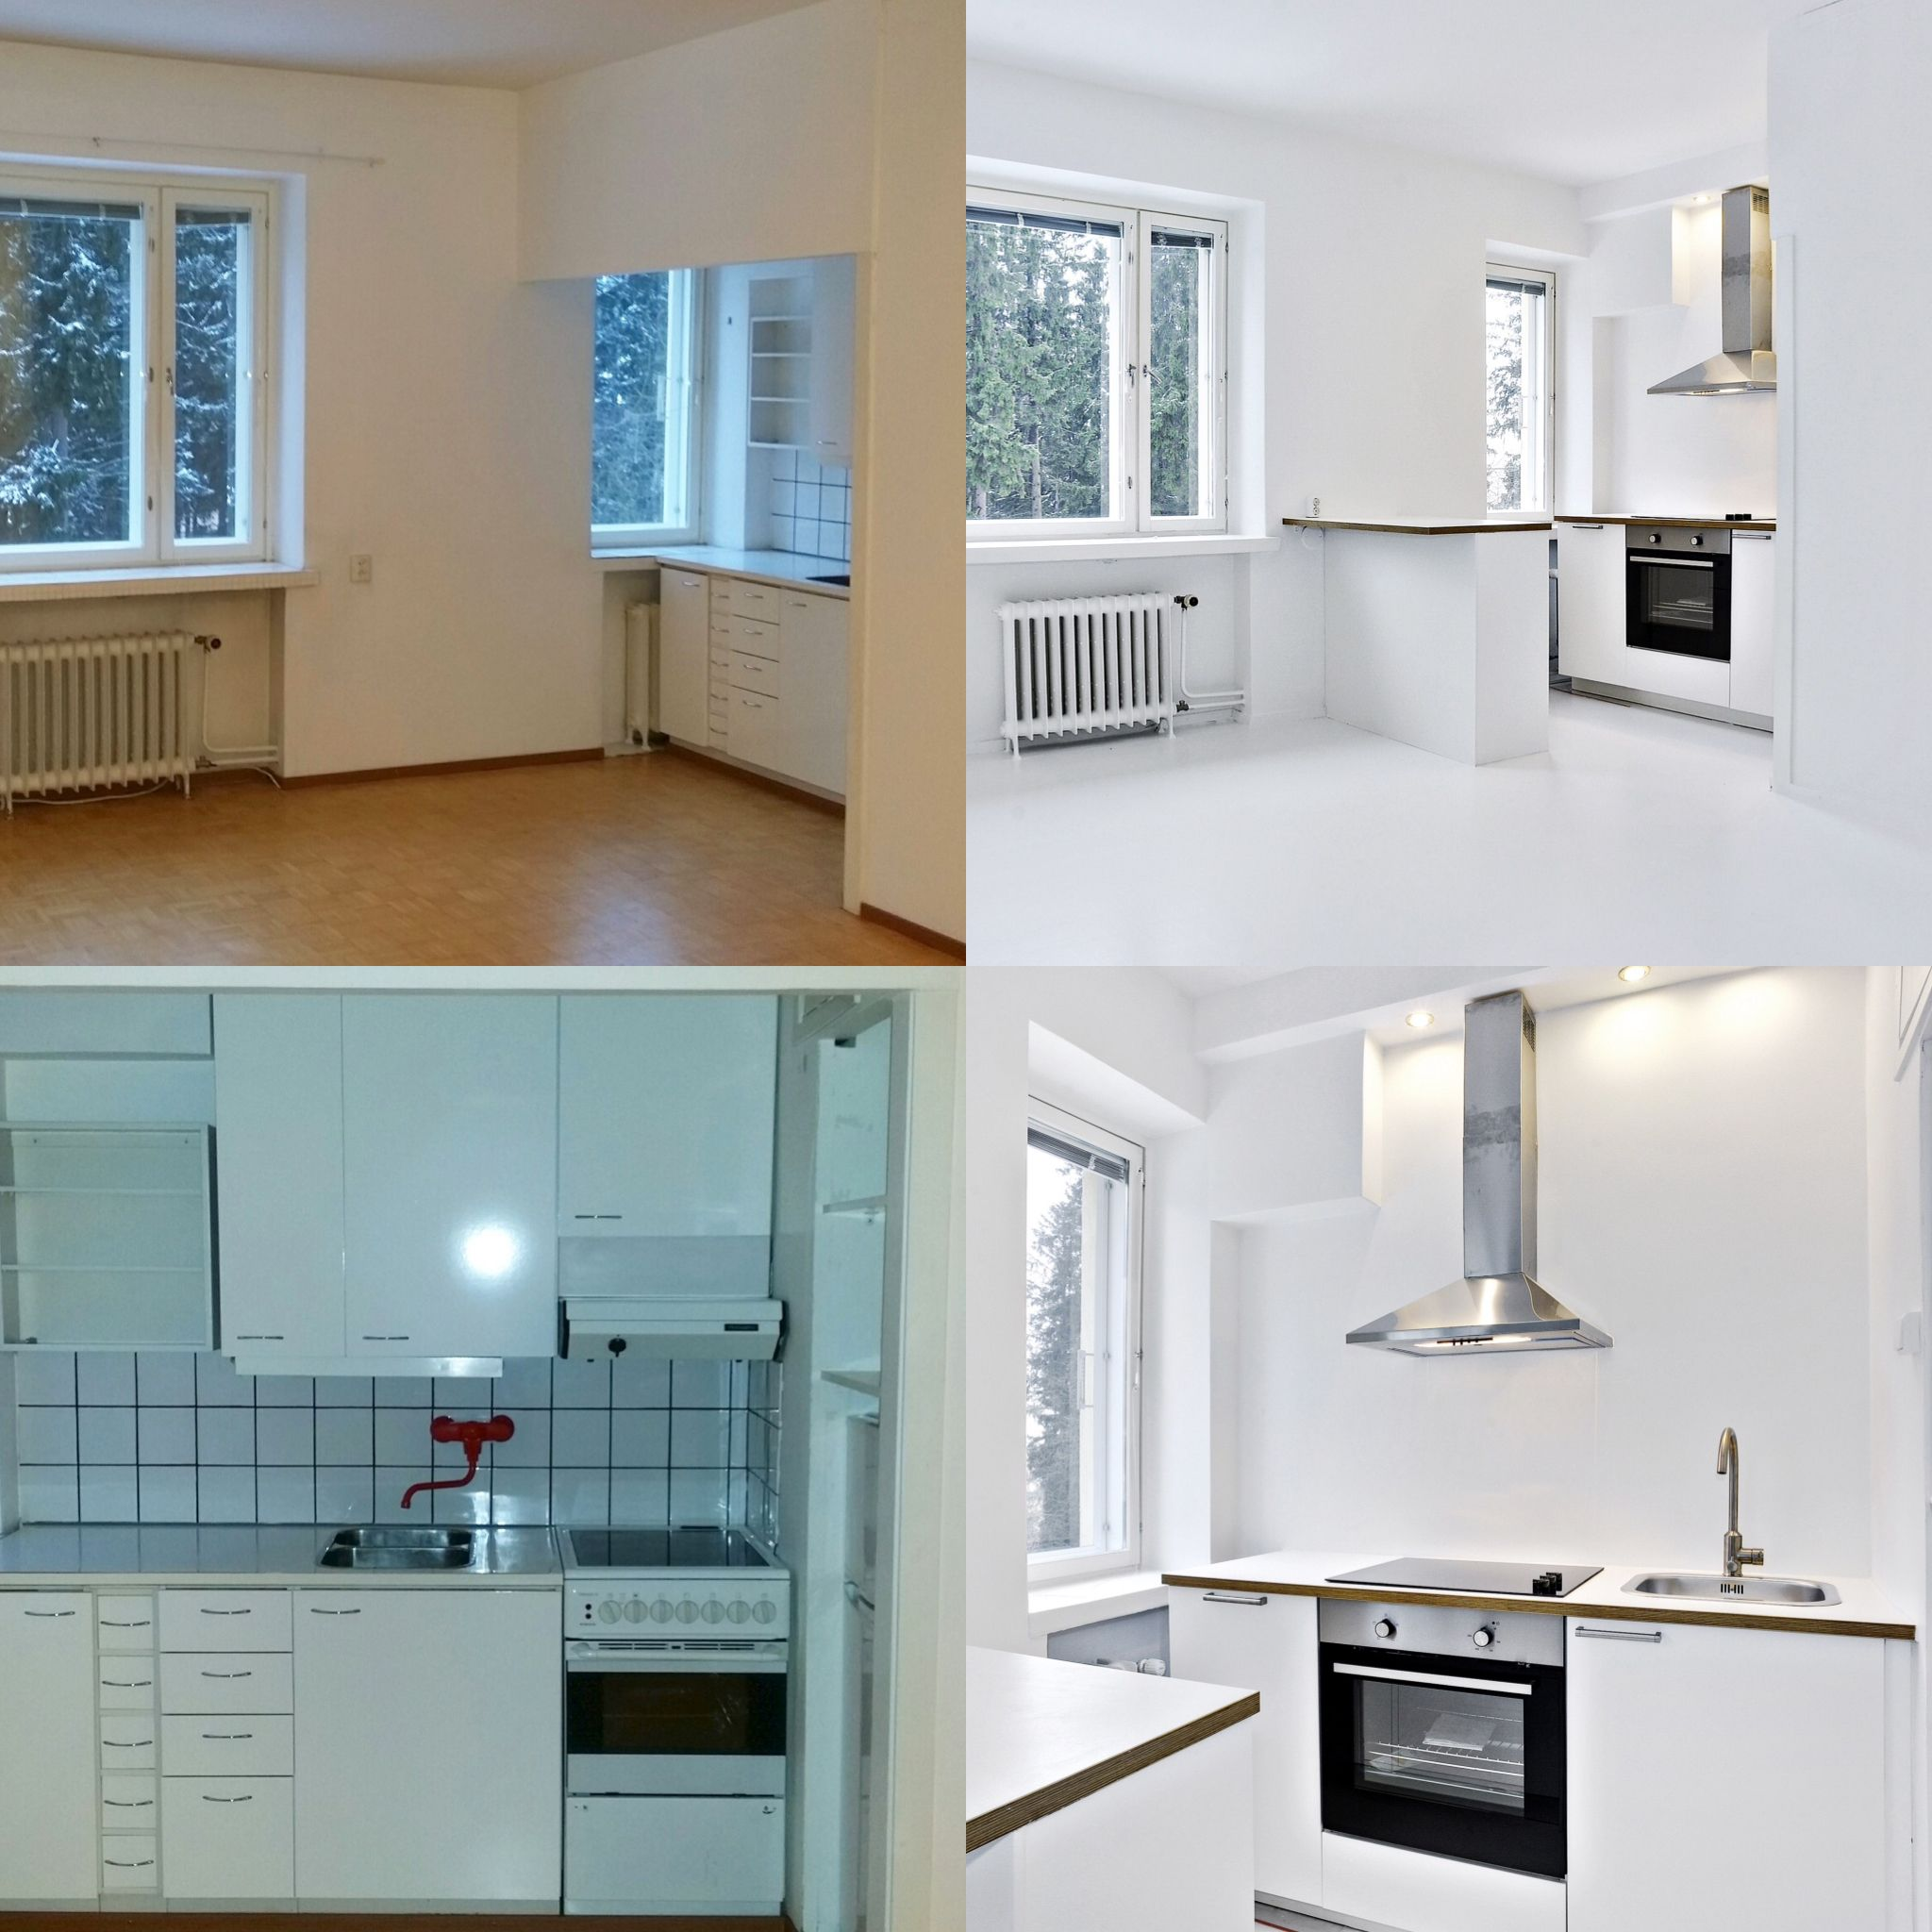 Before and after of a tiny kitchen in Helsinki. Design by paasi ...